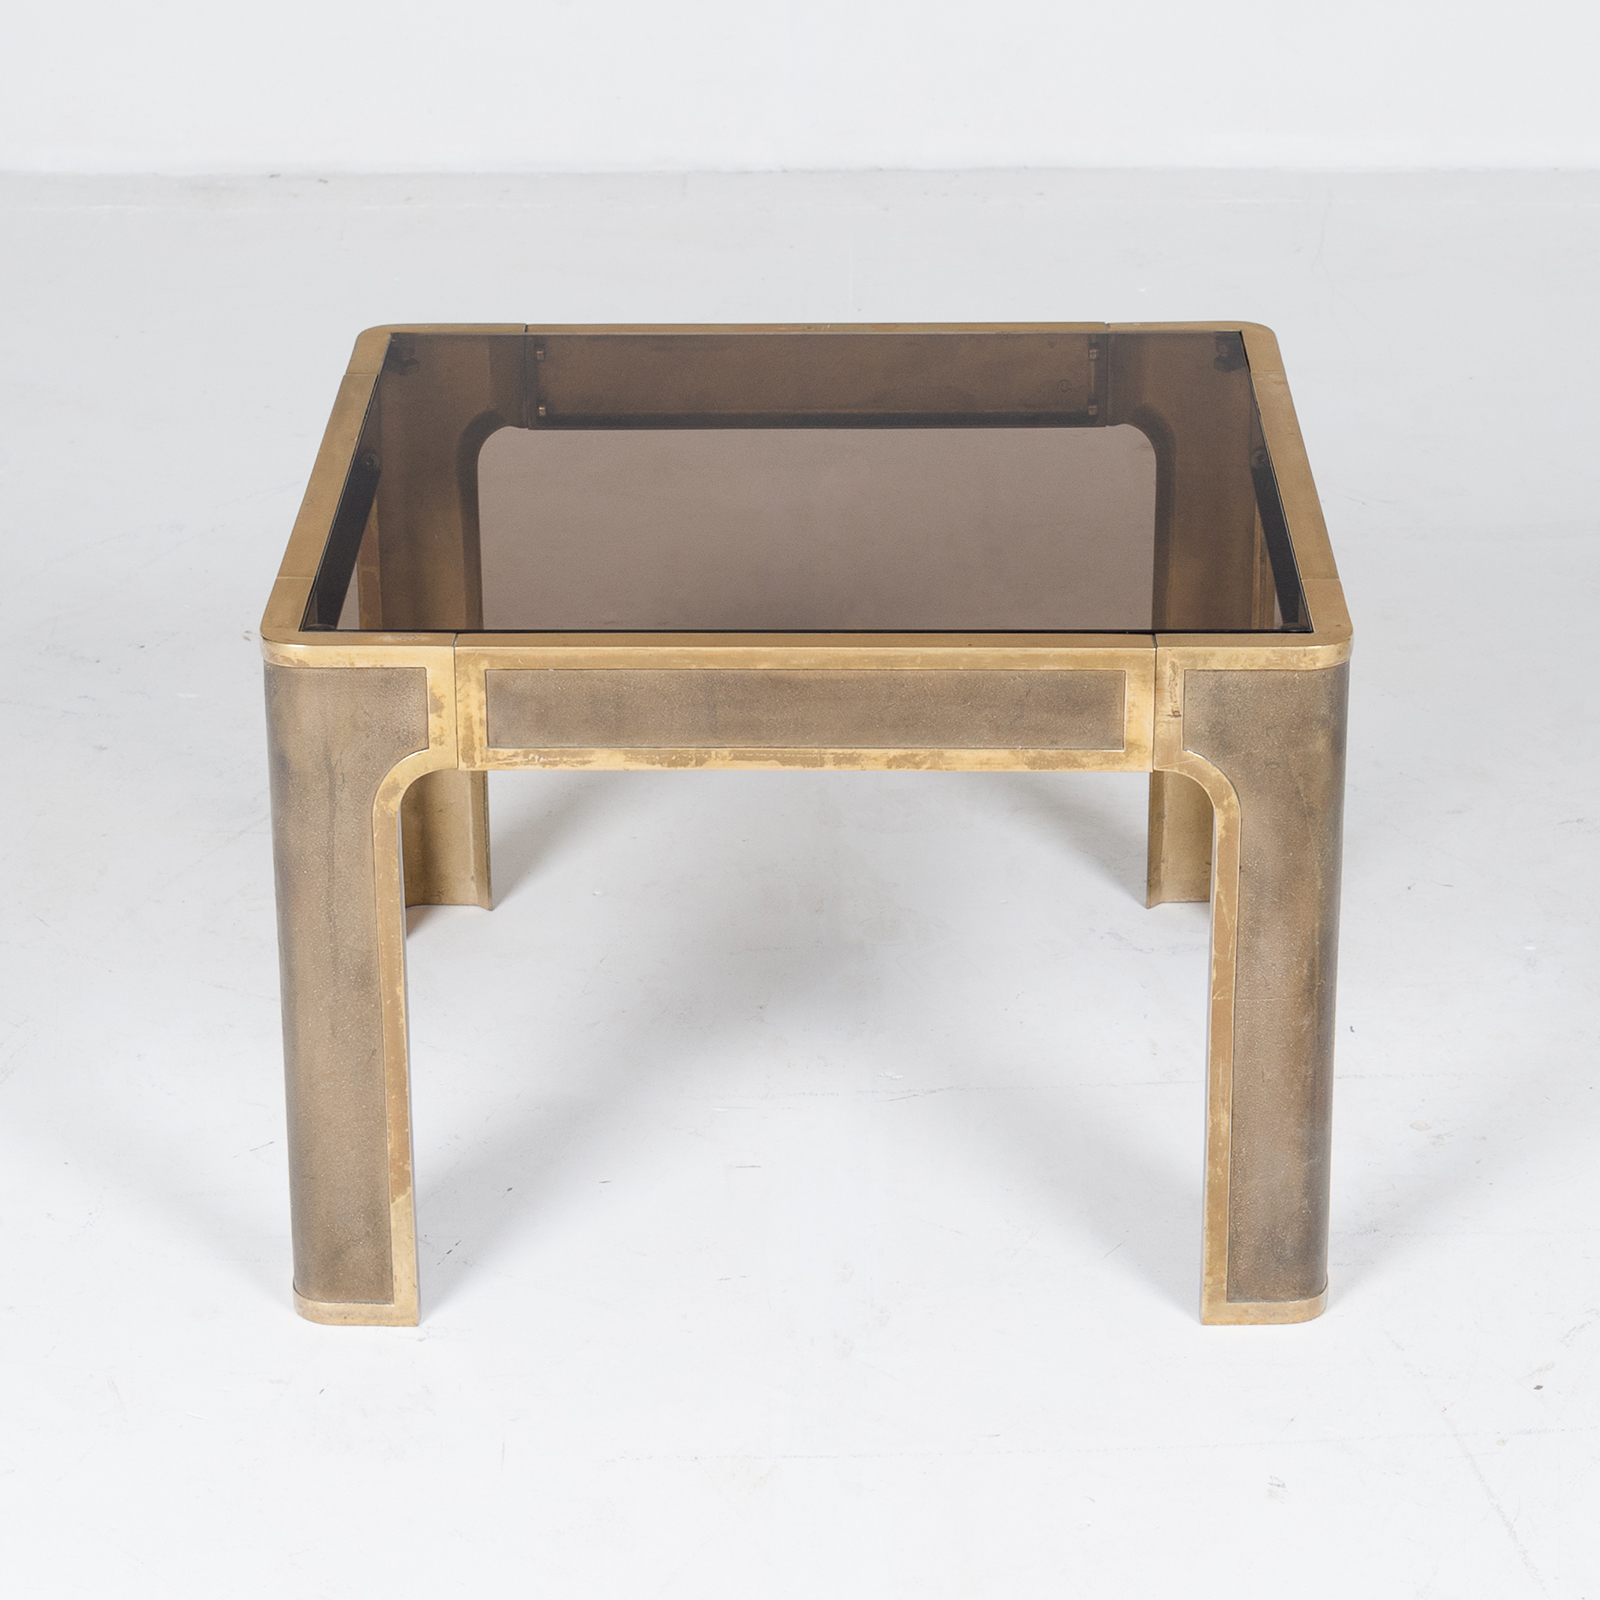 Square Coffee Table By Peter Ghyczy With Smoked Glass Top And Embossed Base, 1970s, The Netherlands895